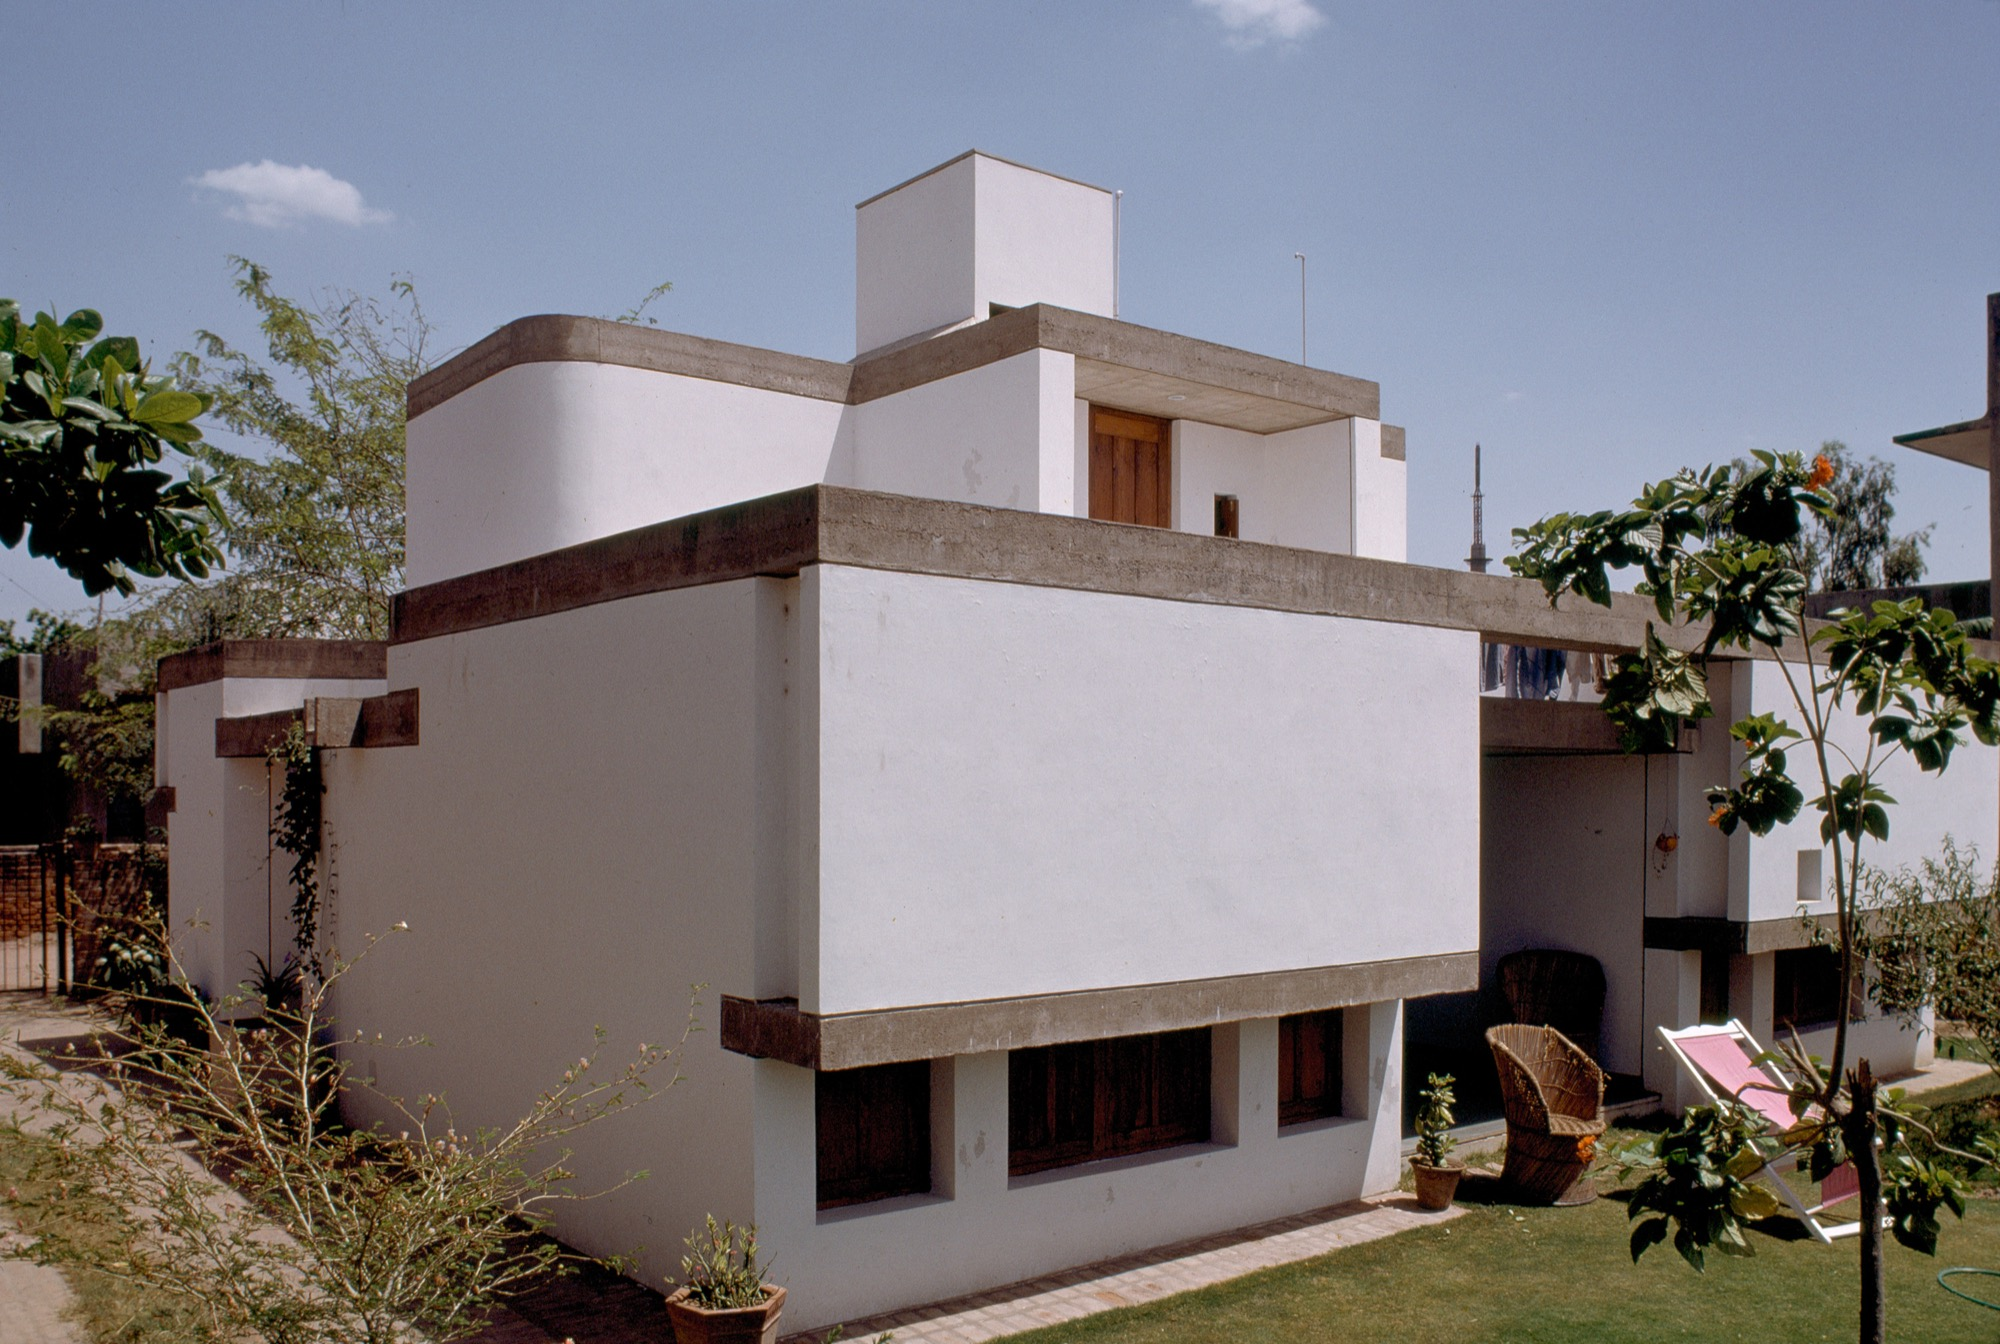 Of Light, Shade and Shelterdness in Design of Private Residences - P. Venugopal 1